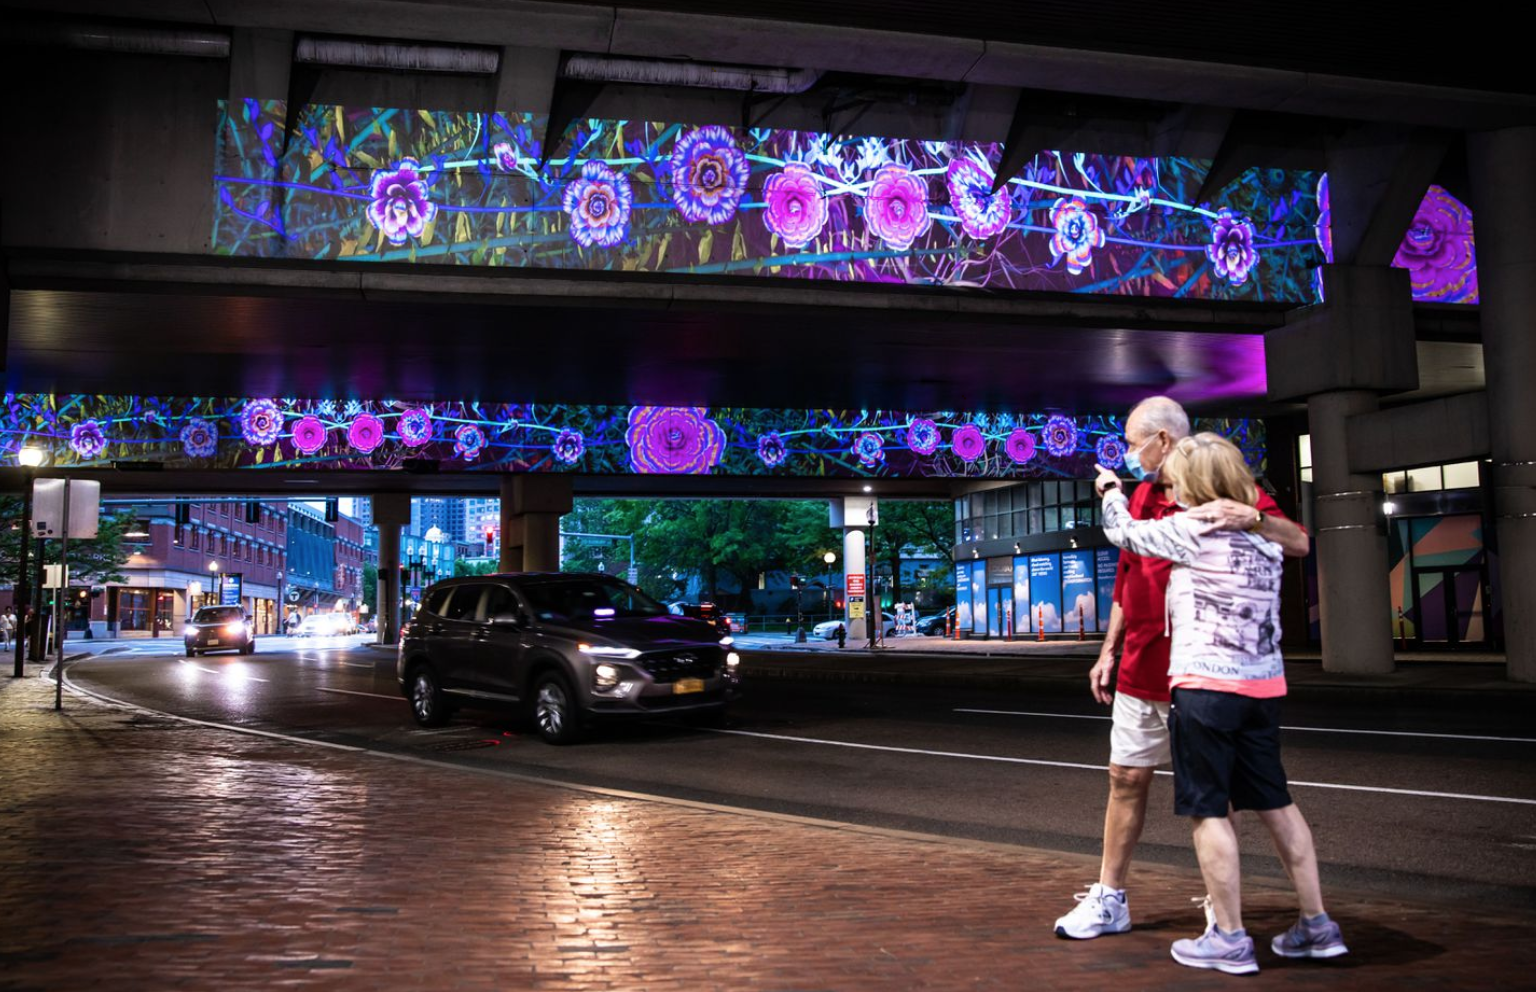 """City Bloom,"" a public light installation near Government Center, will remain on display through 2020.ARAM BOGHOSIAN""City Bloom,"" a public light installation near Government Center, will remain on display through 2020.ARAM BOGHOSIAN"